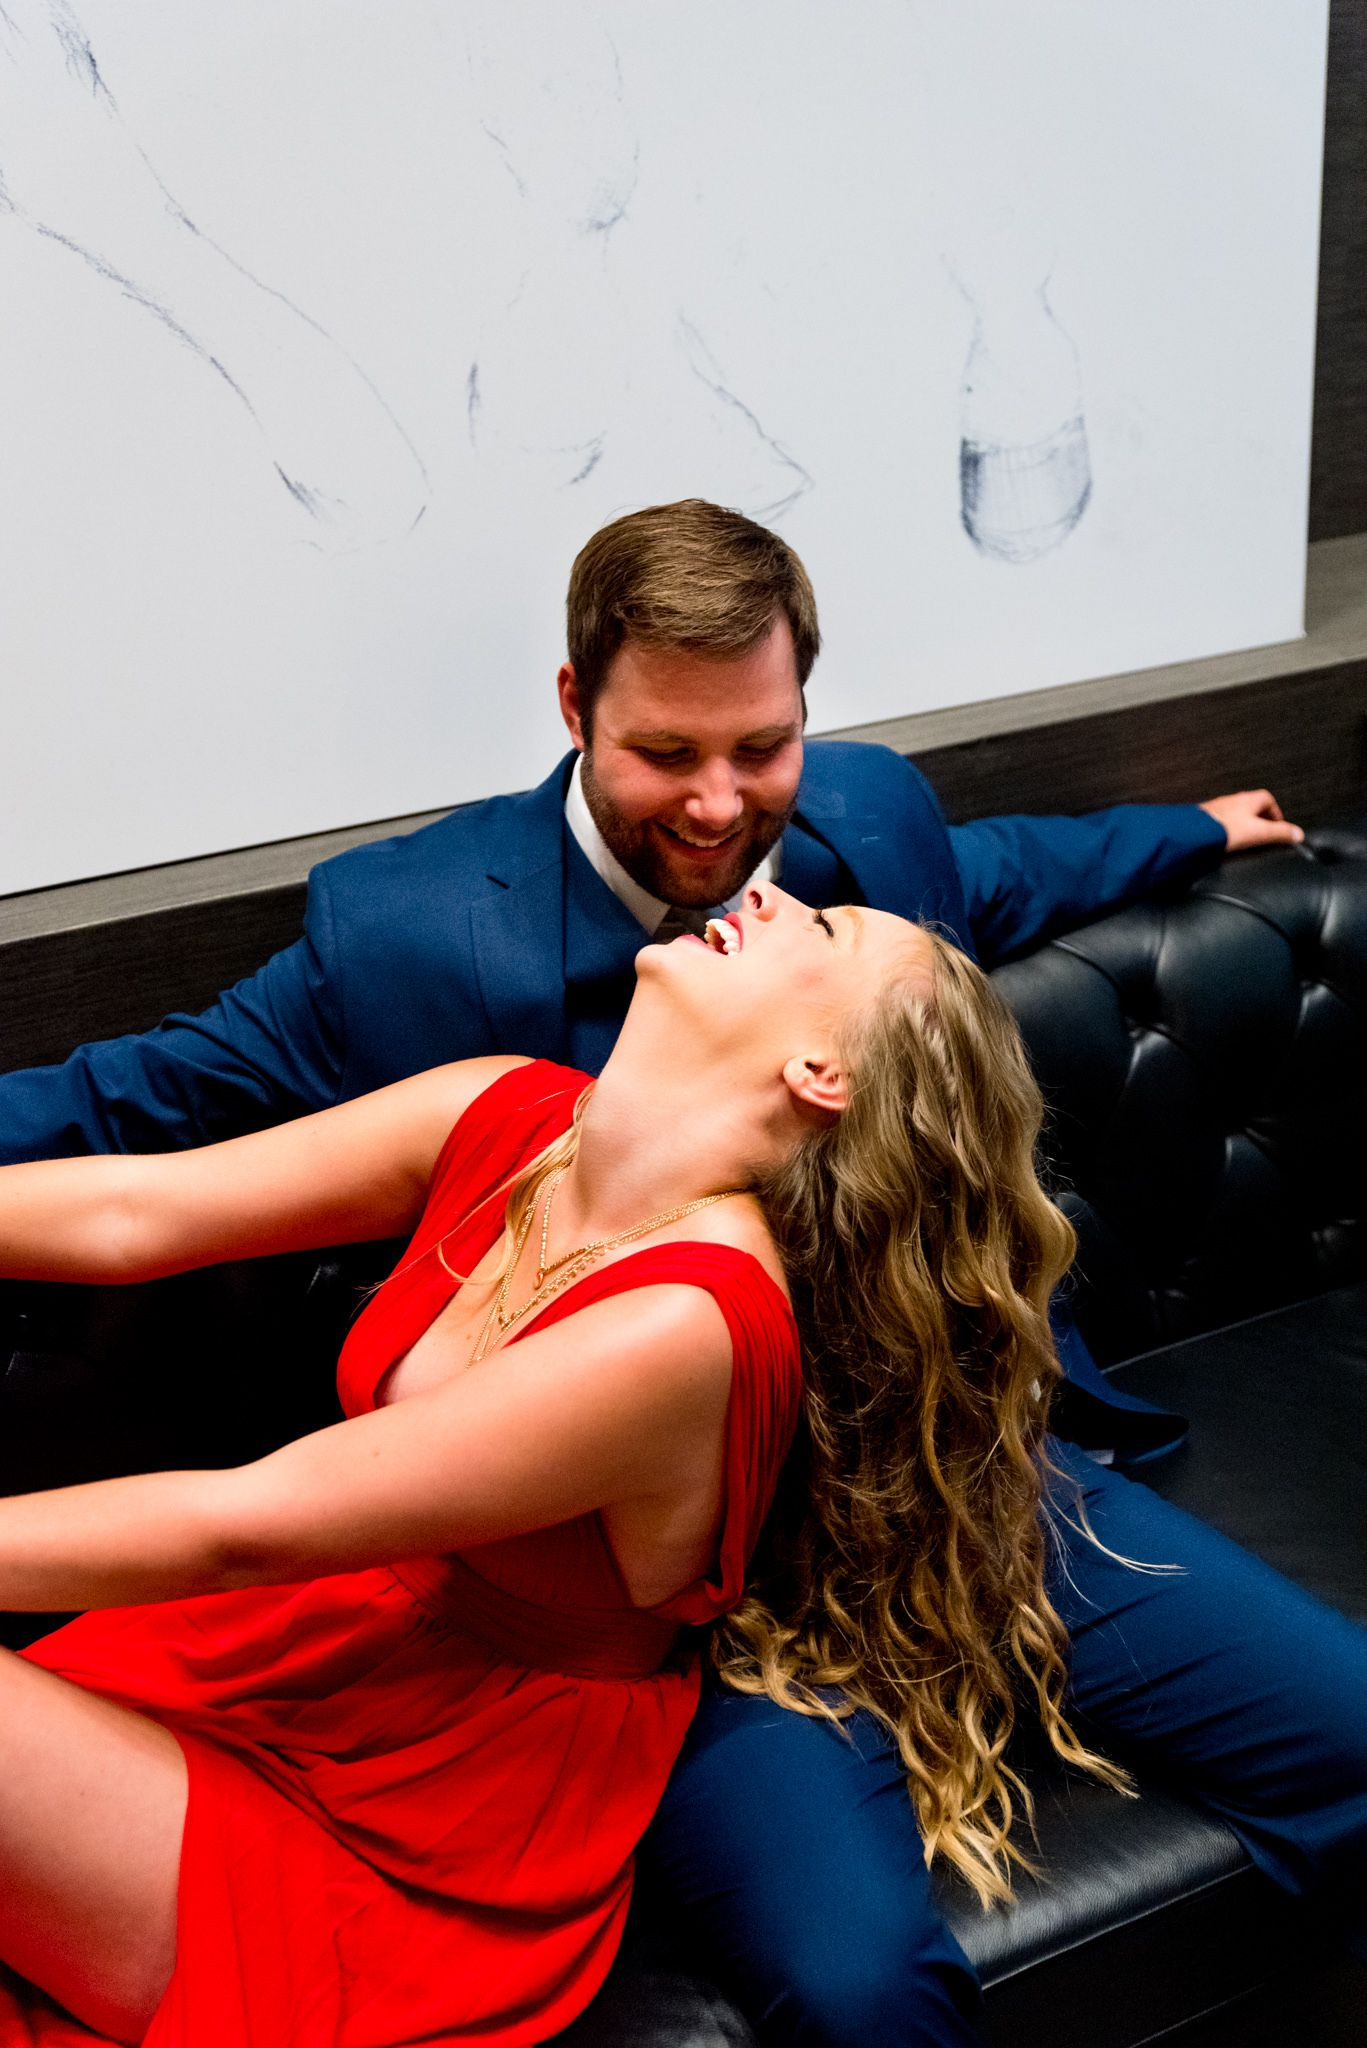 man in navy suit sitting on black leather couch and woman in red dress leans back and laughs